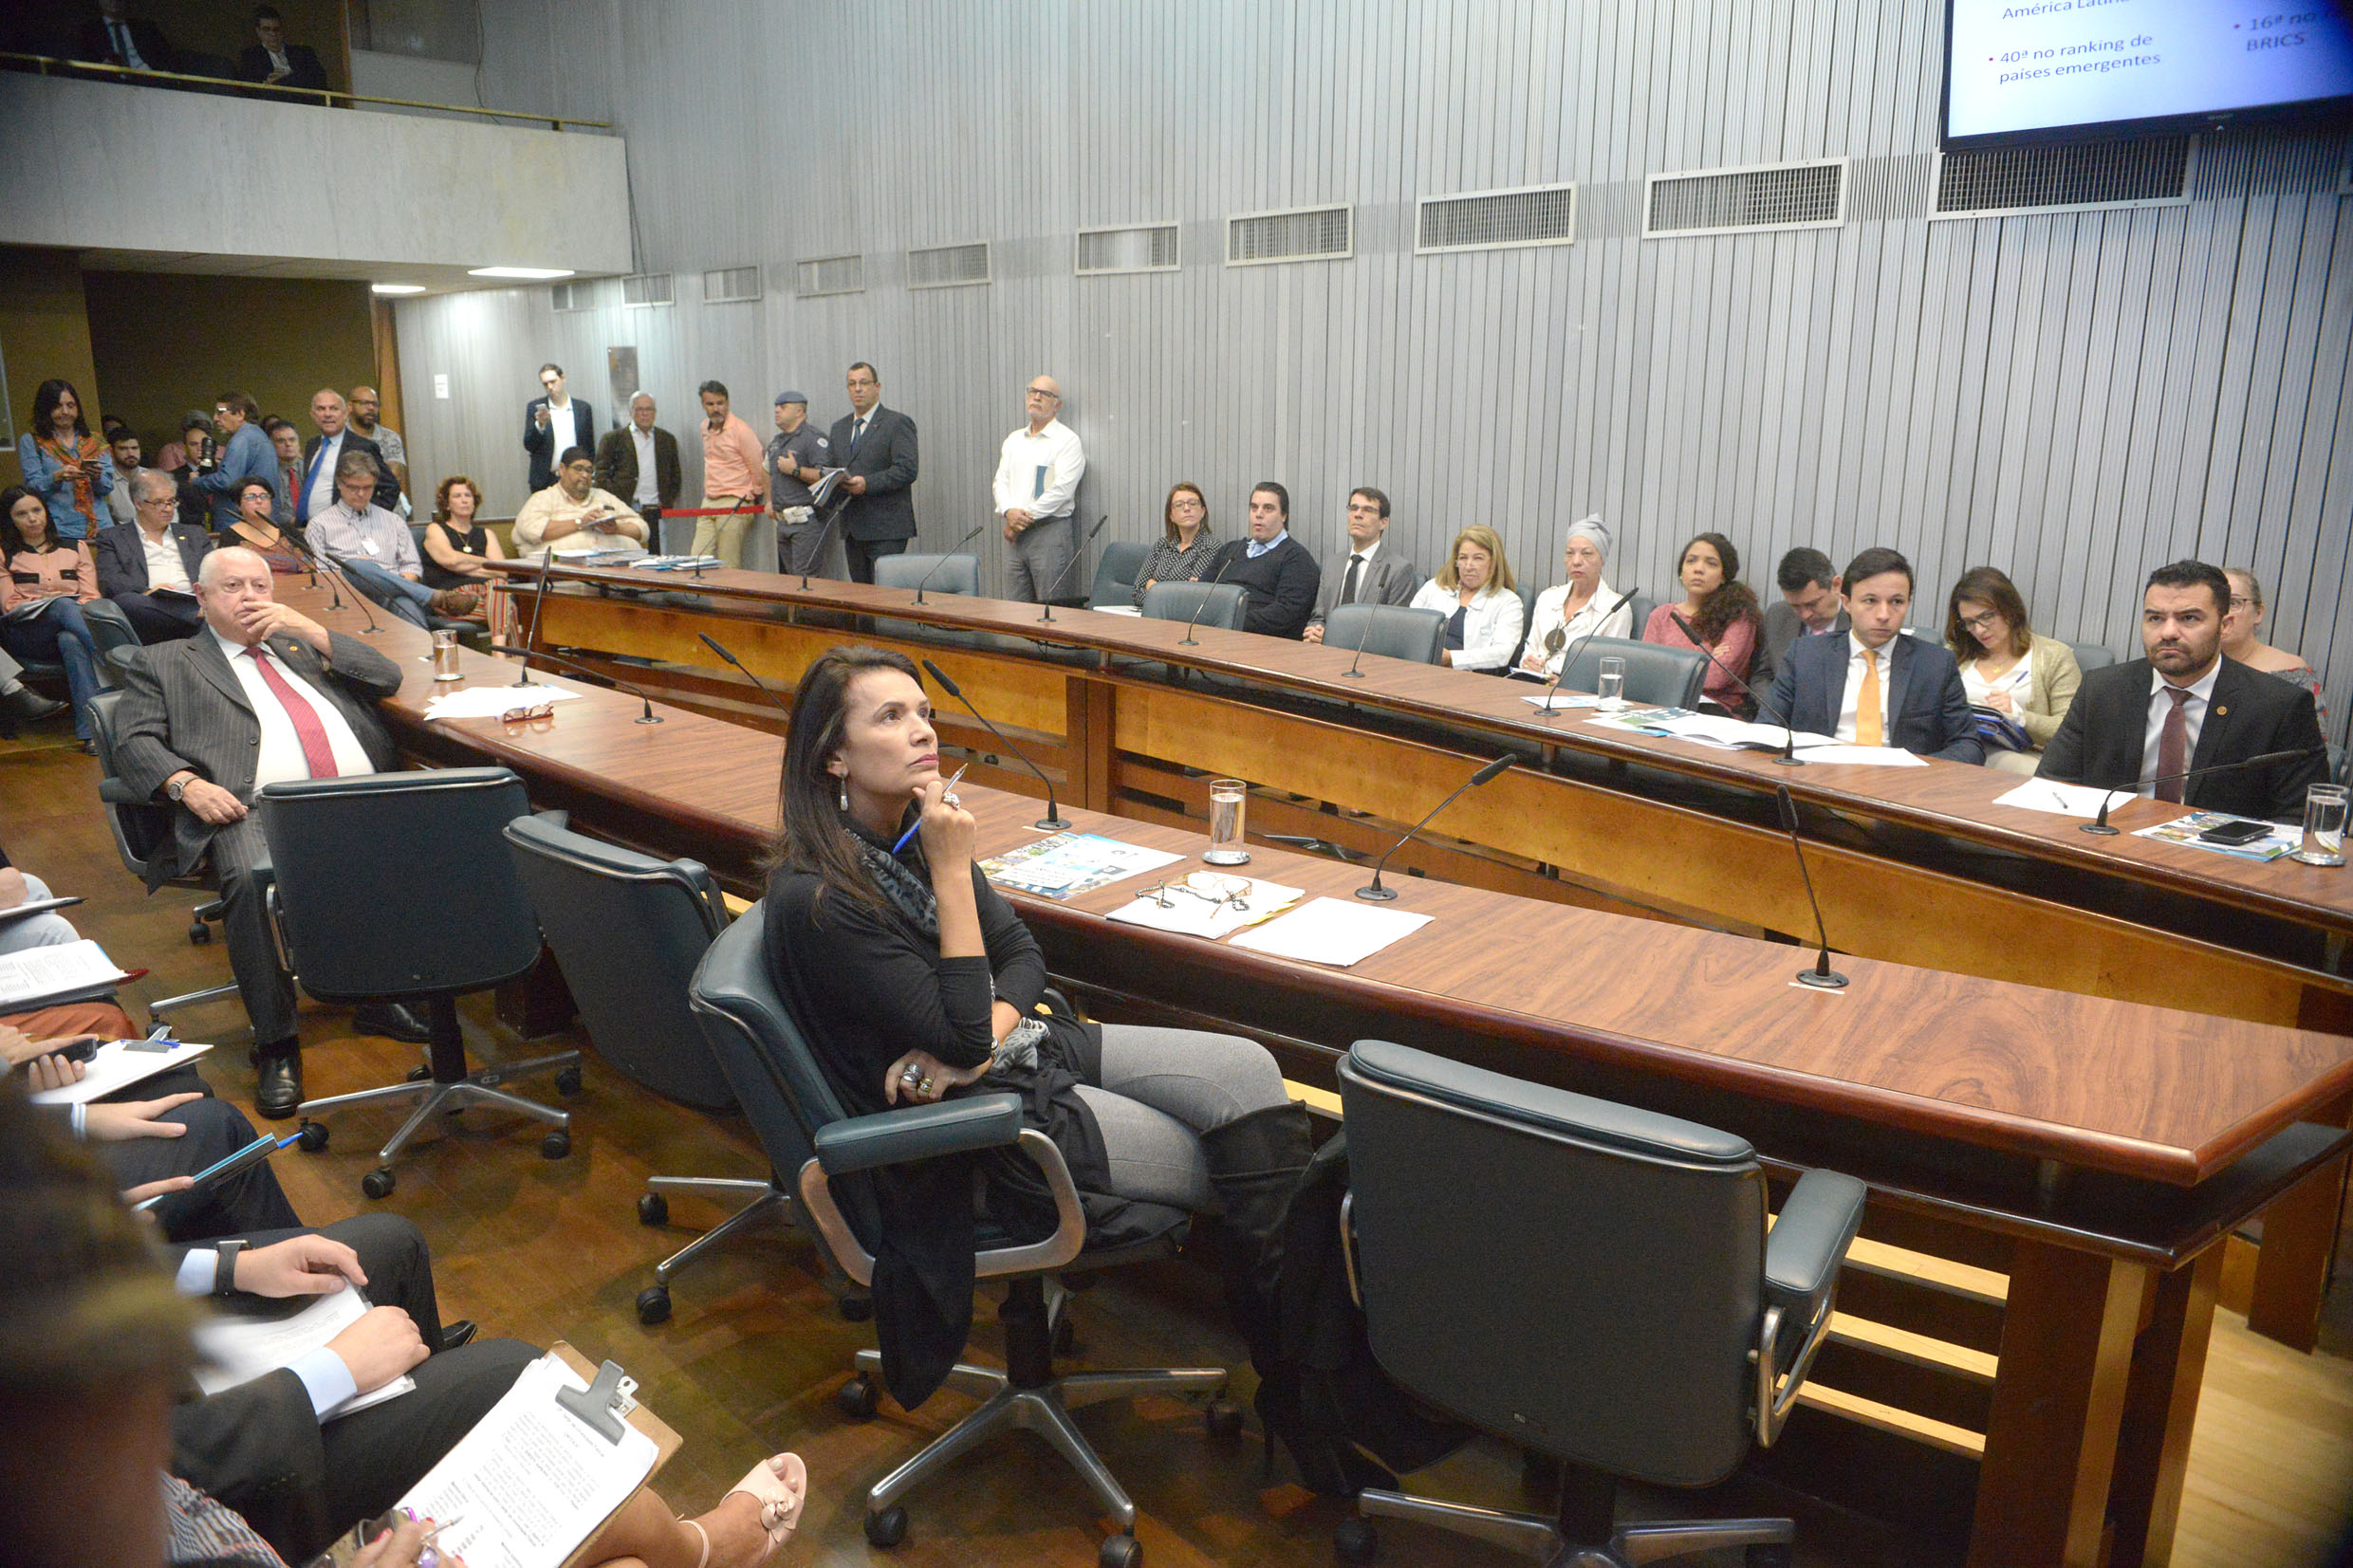 Parlamentares na CPI<a style='float:right' href='https://www3.al.sp.gov.br/repositorio/noticia/N-06-2019/fg236192.jpg' target=_blank><img src='/_img/material-file-download-white.png' width='14px' alt='Clique para baixar a imagem'></a>